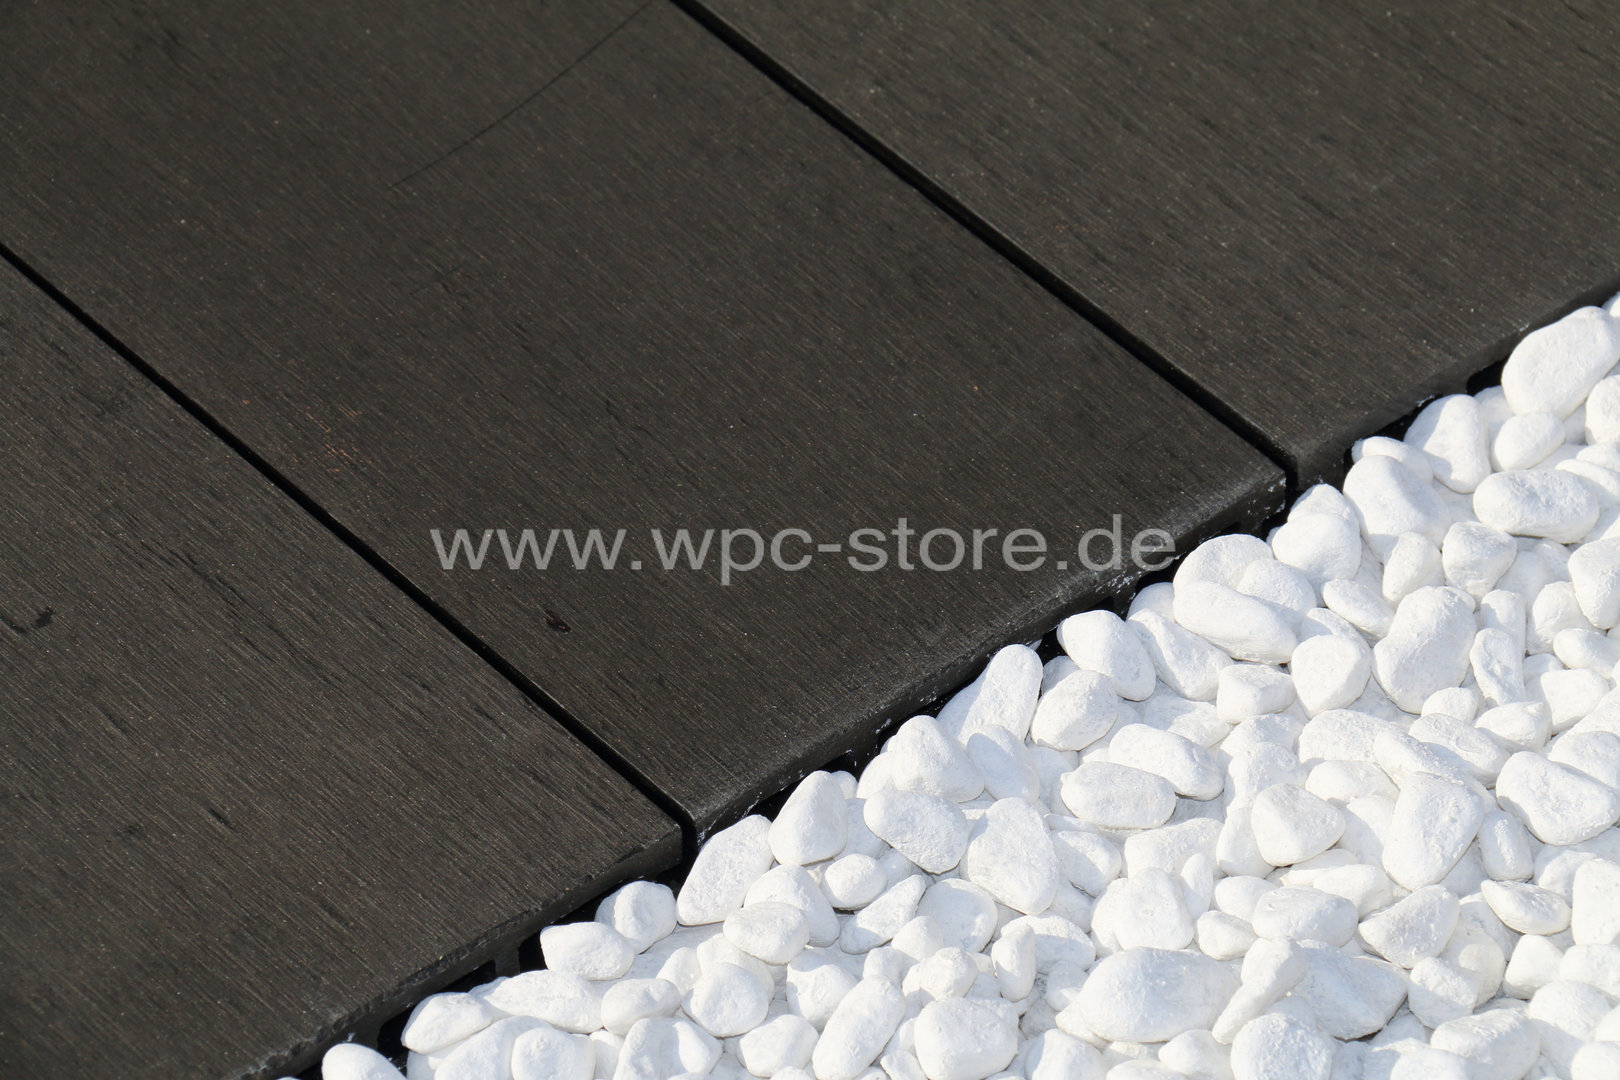 wpc terrassendielen komplettset anthrazit glatt 220x15x2 5cm wpc store. Black Bedroom Furniture Sets. Home Design Ideas